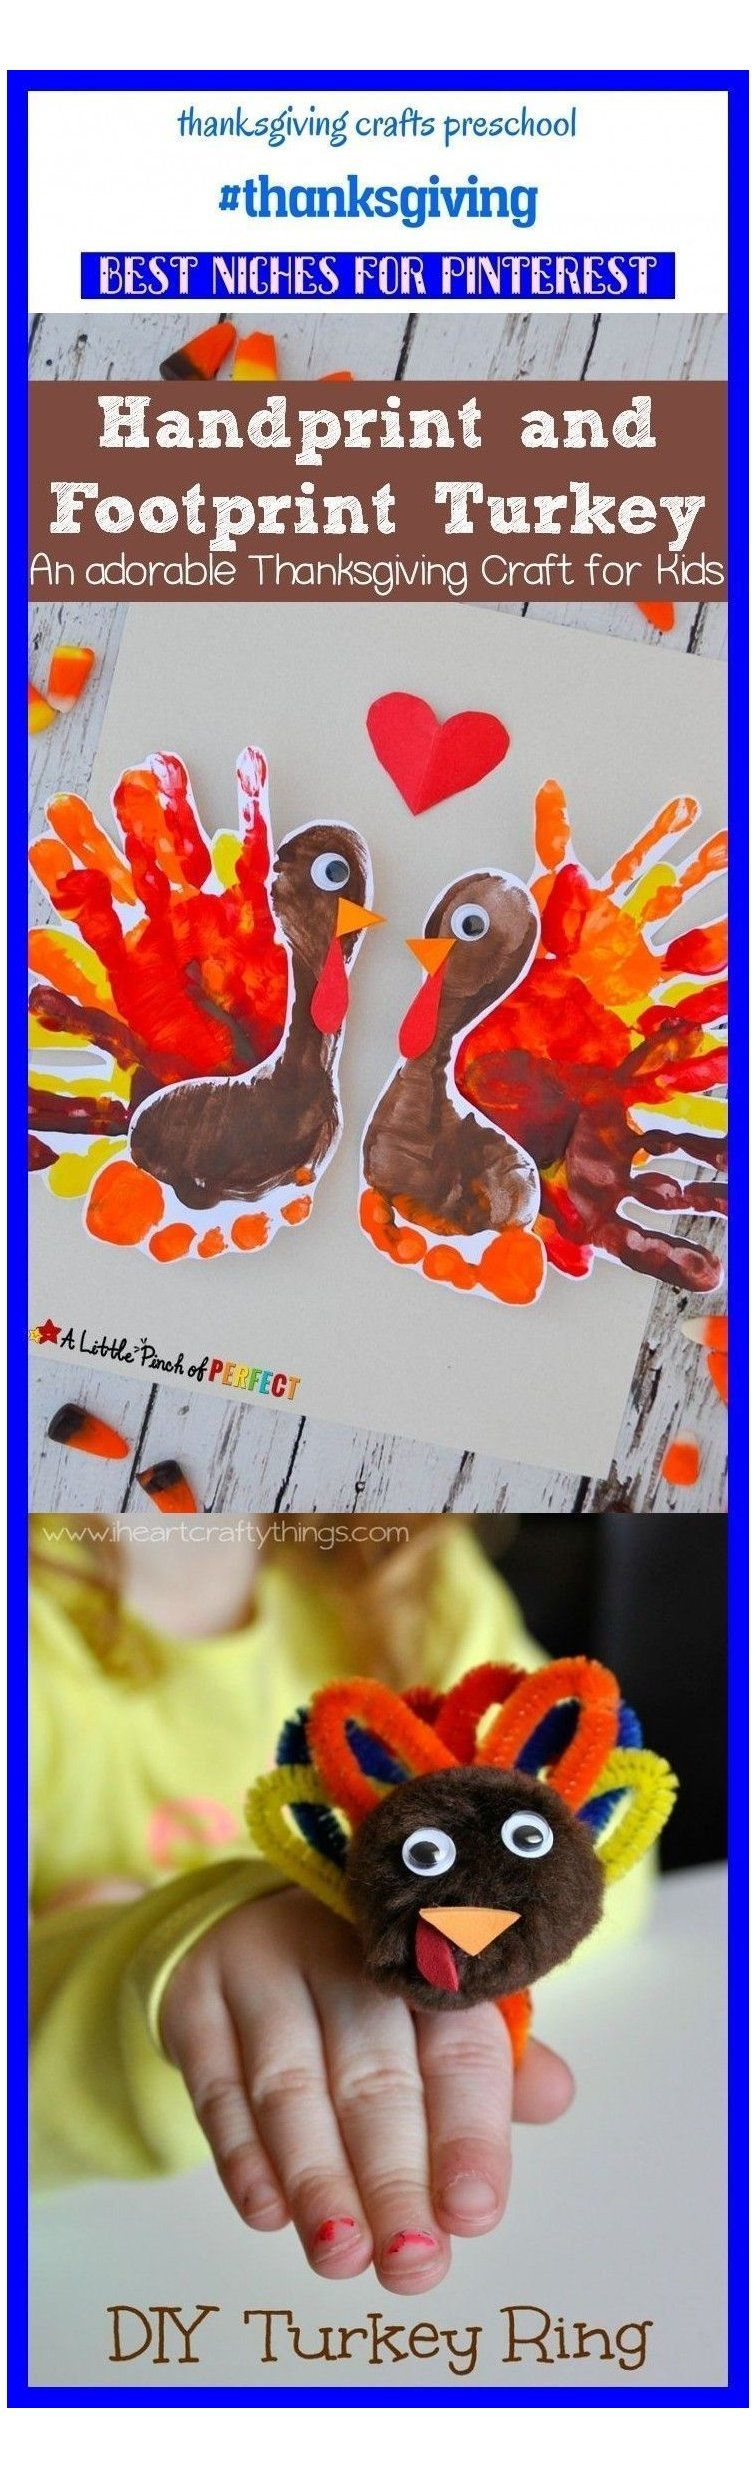 Infant Thanksgiving Crafts Baby sleep #holidaycrafts Baby sleep #infant #thanksgiving #crafts infant t #halloweencrafts